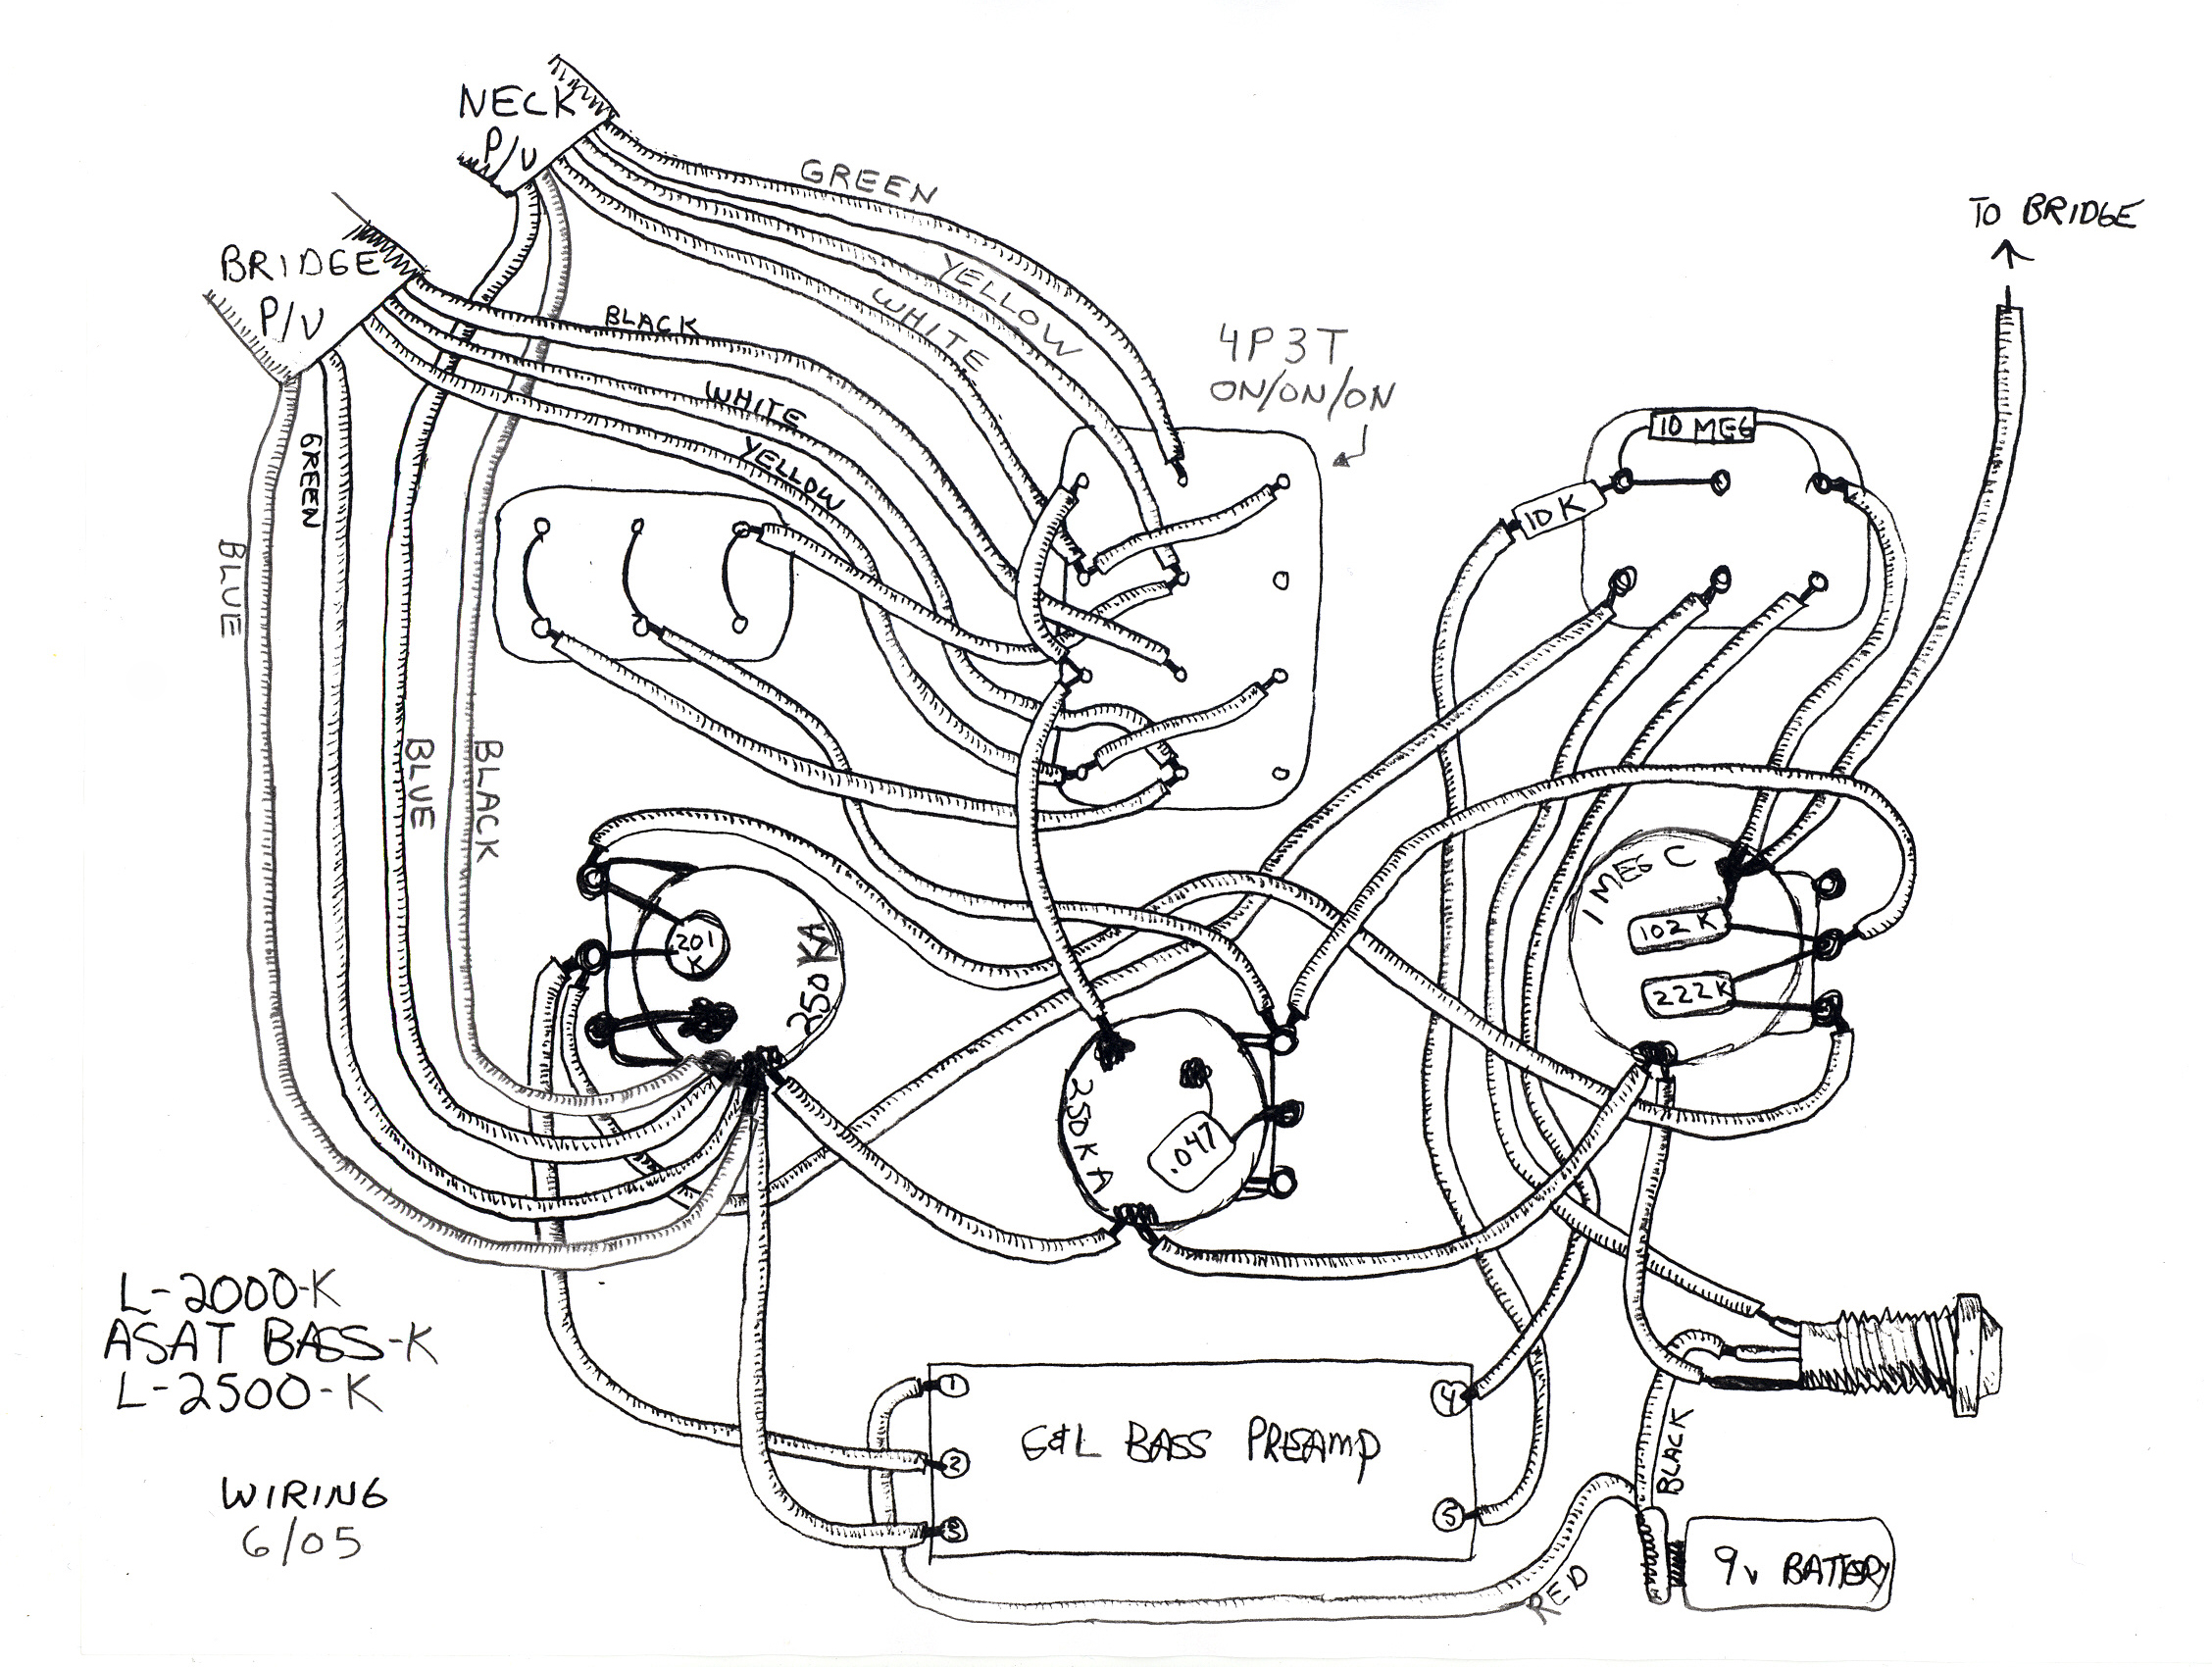 hss strat wiring diagram block of half adder g l diagrams and schematics pdf is 2 4mb experimental another